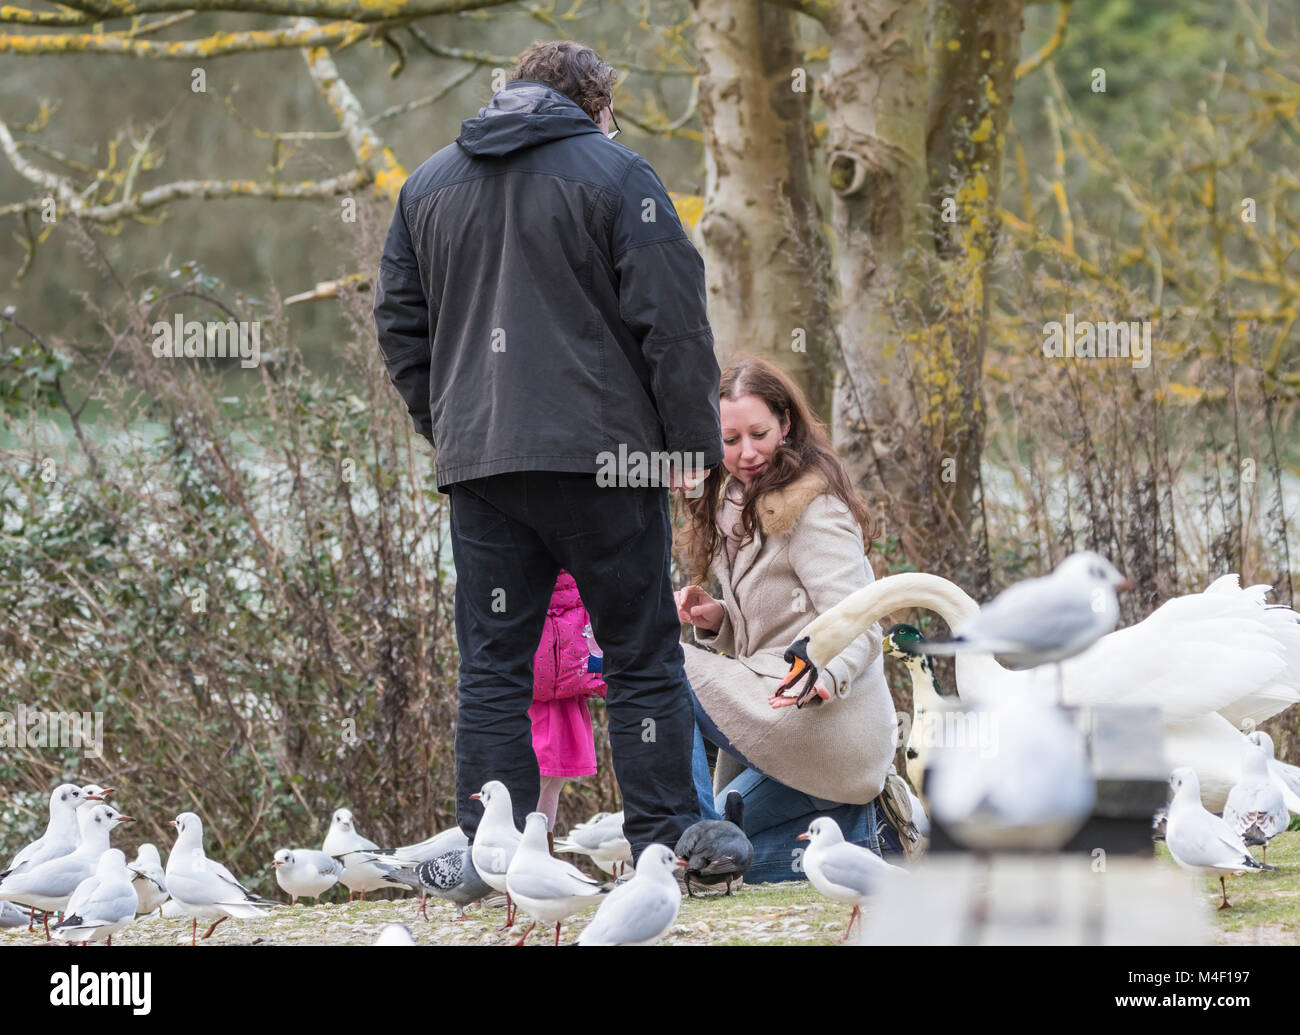 Feeding food to swans in the UK. - Stock Image